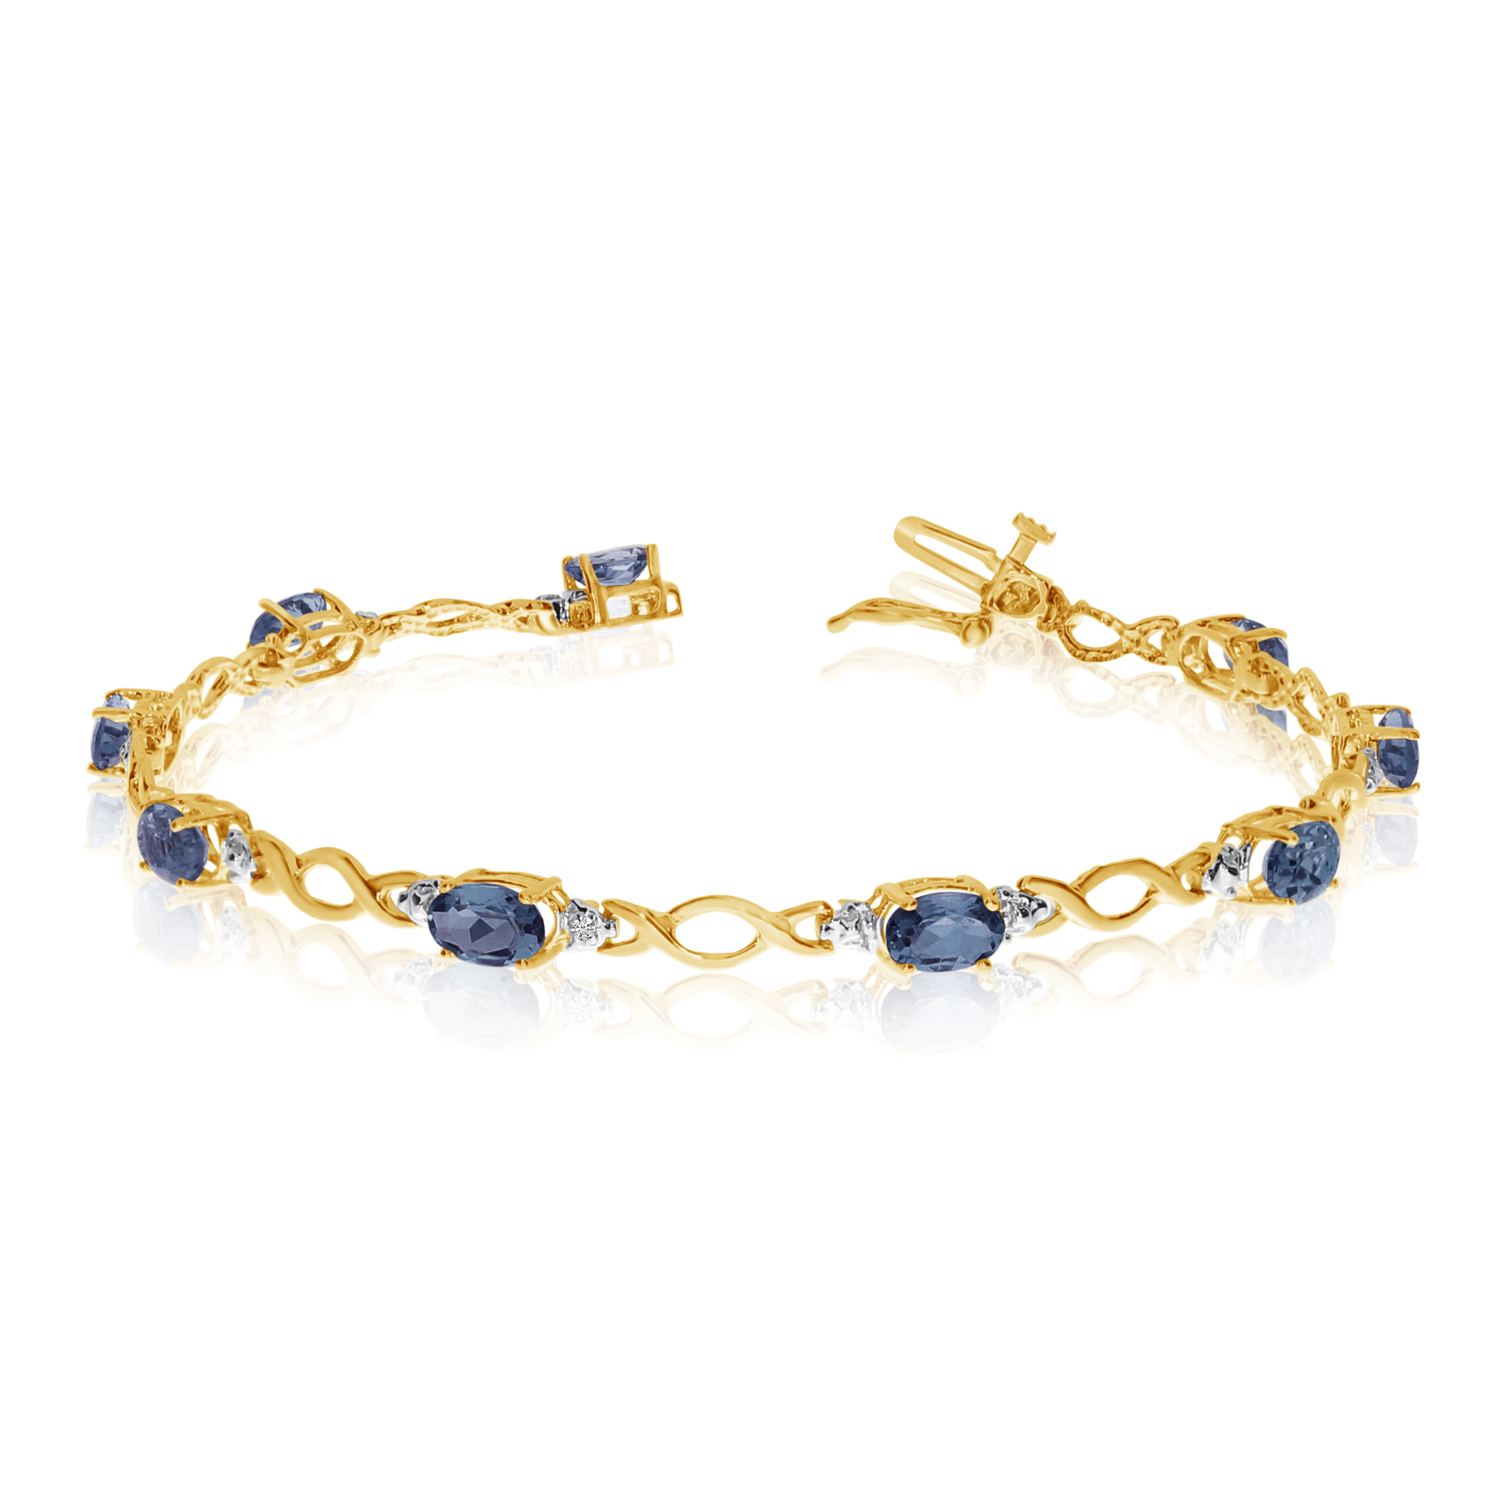 10K Yellow Gold Oval Sapphire and Diamond Bracelet by LCD